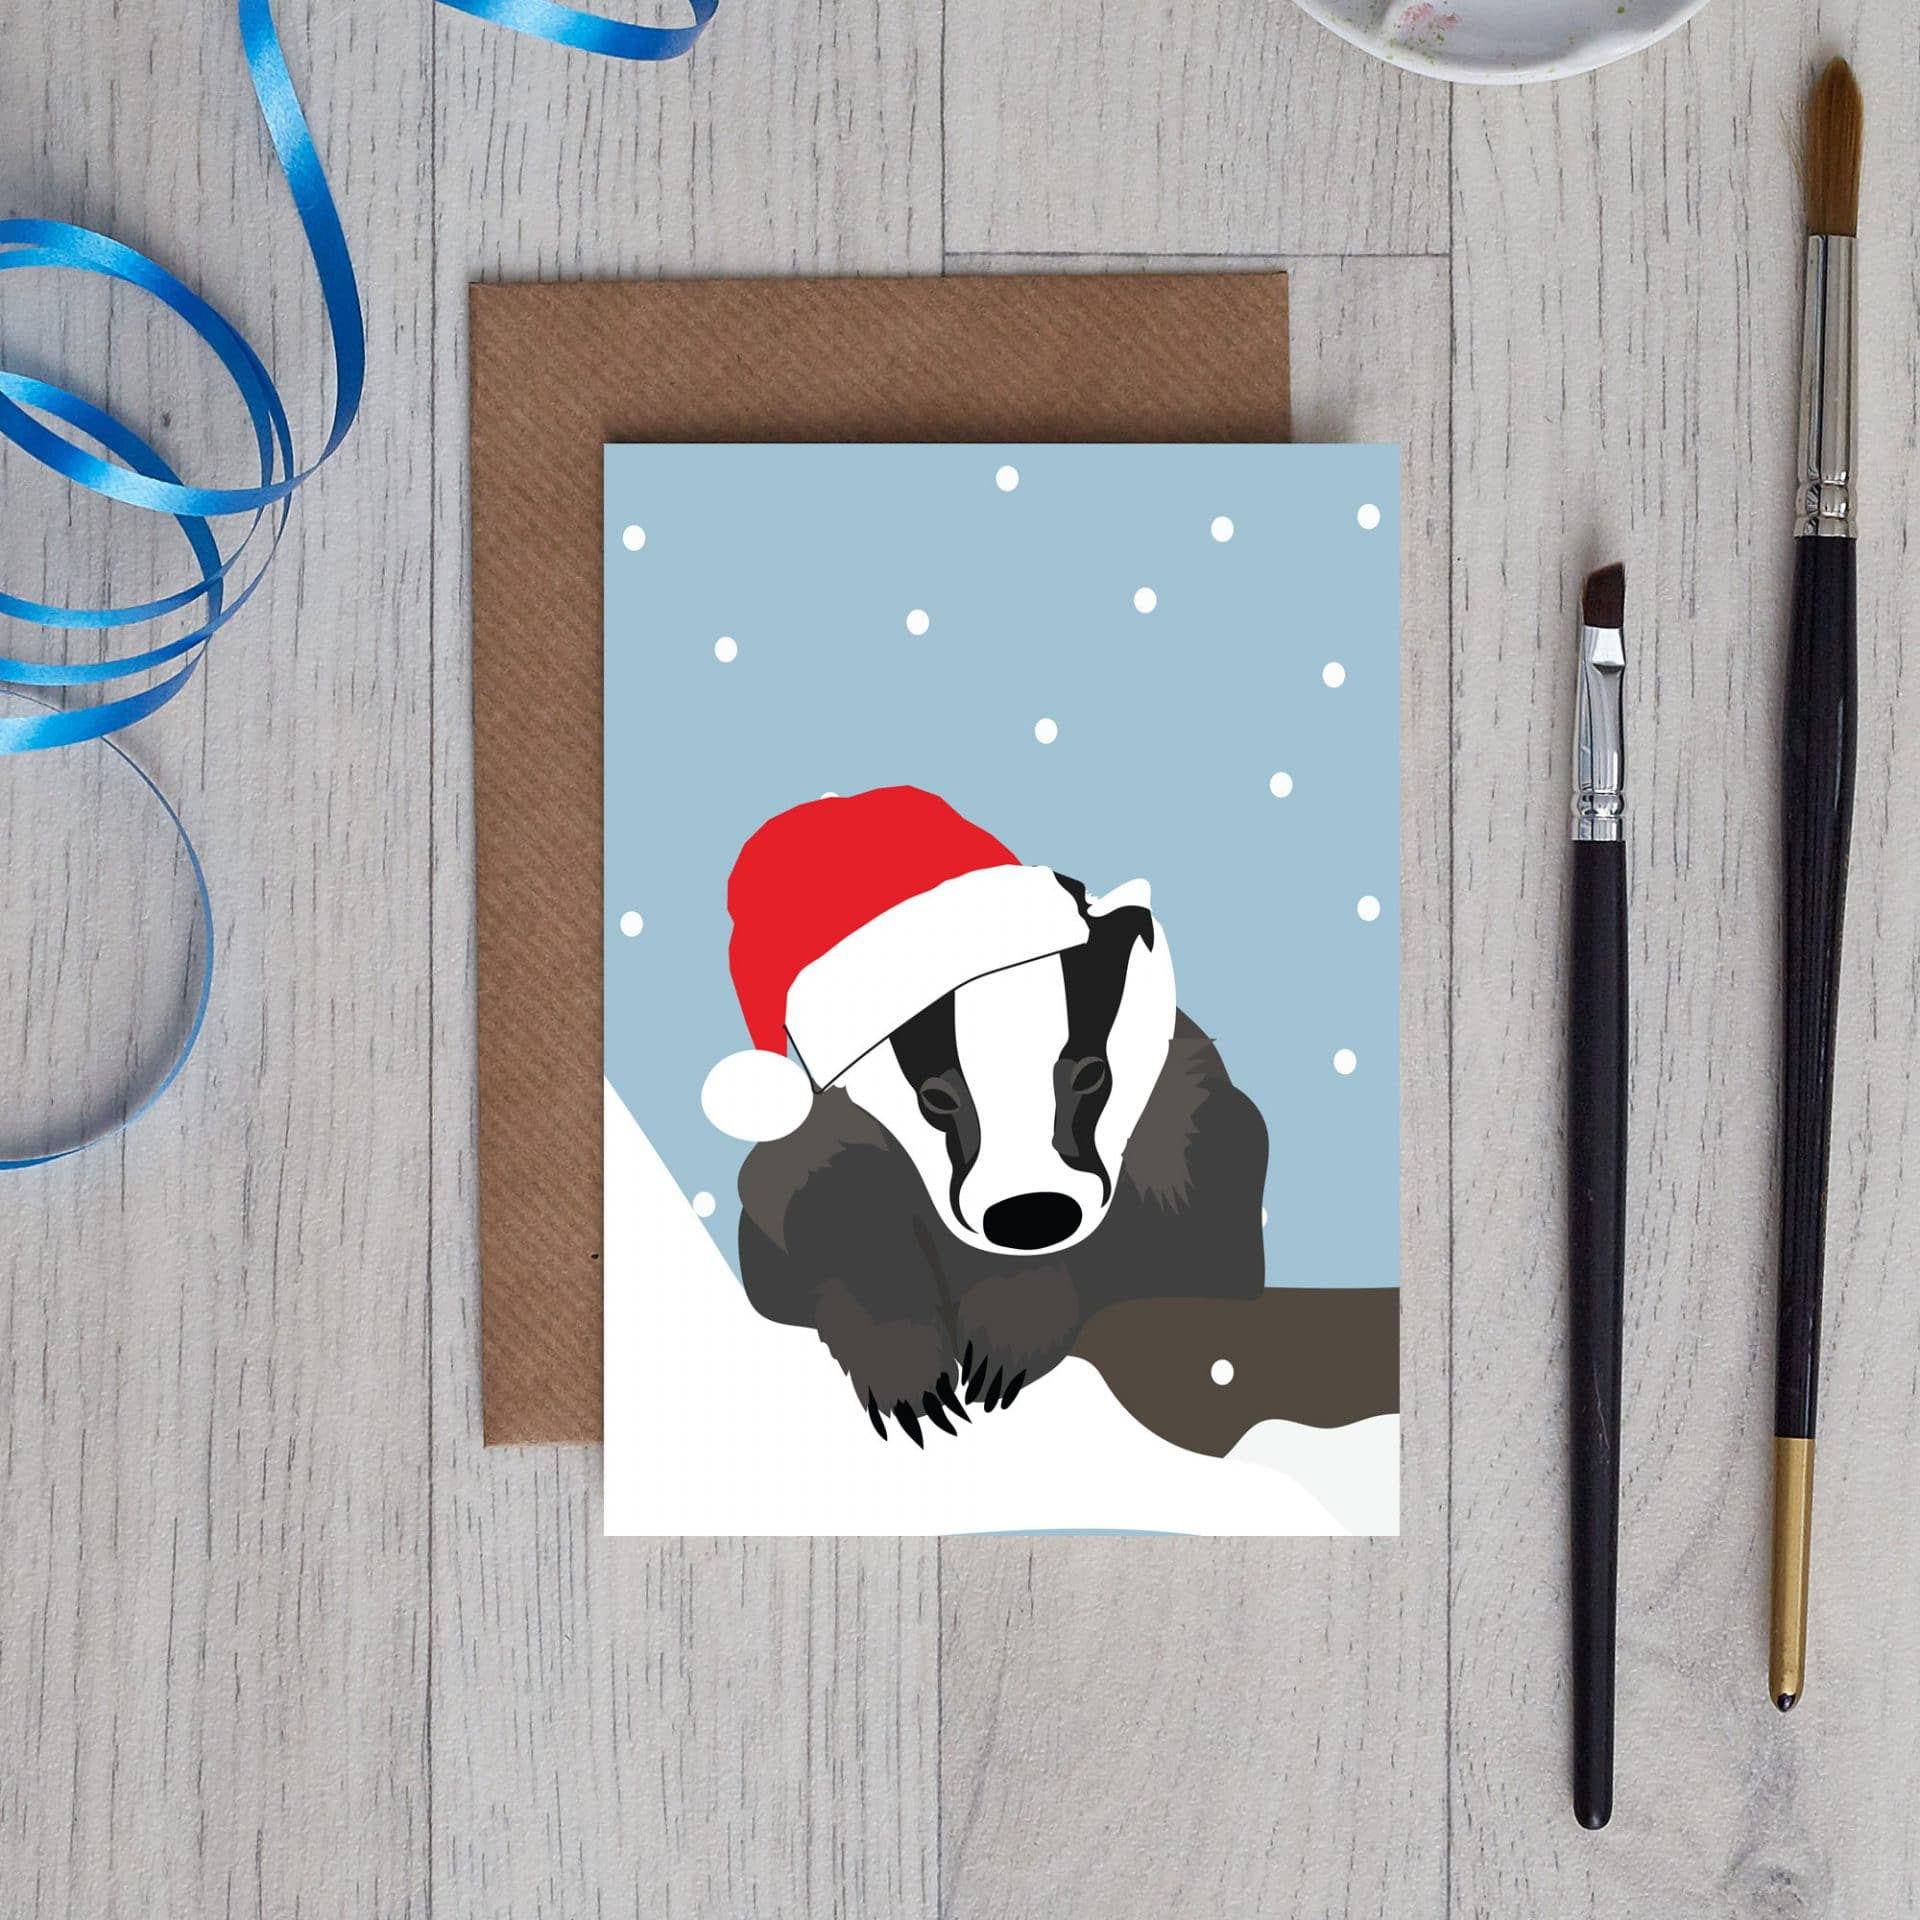 Christmas Card Luxury Designer Personalised Message Sustainable Environmentally Friendly FSC Paper Plastic Free - Christmas badger - Borris the badger woodland christmas card by lorna syson